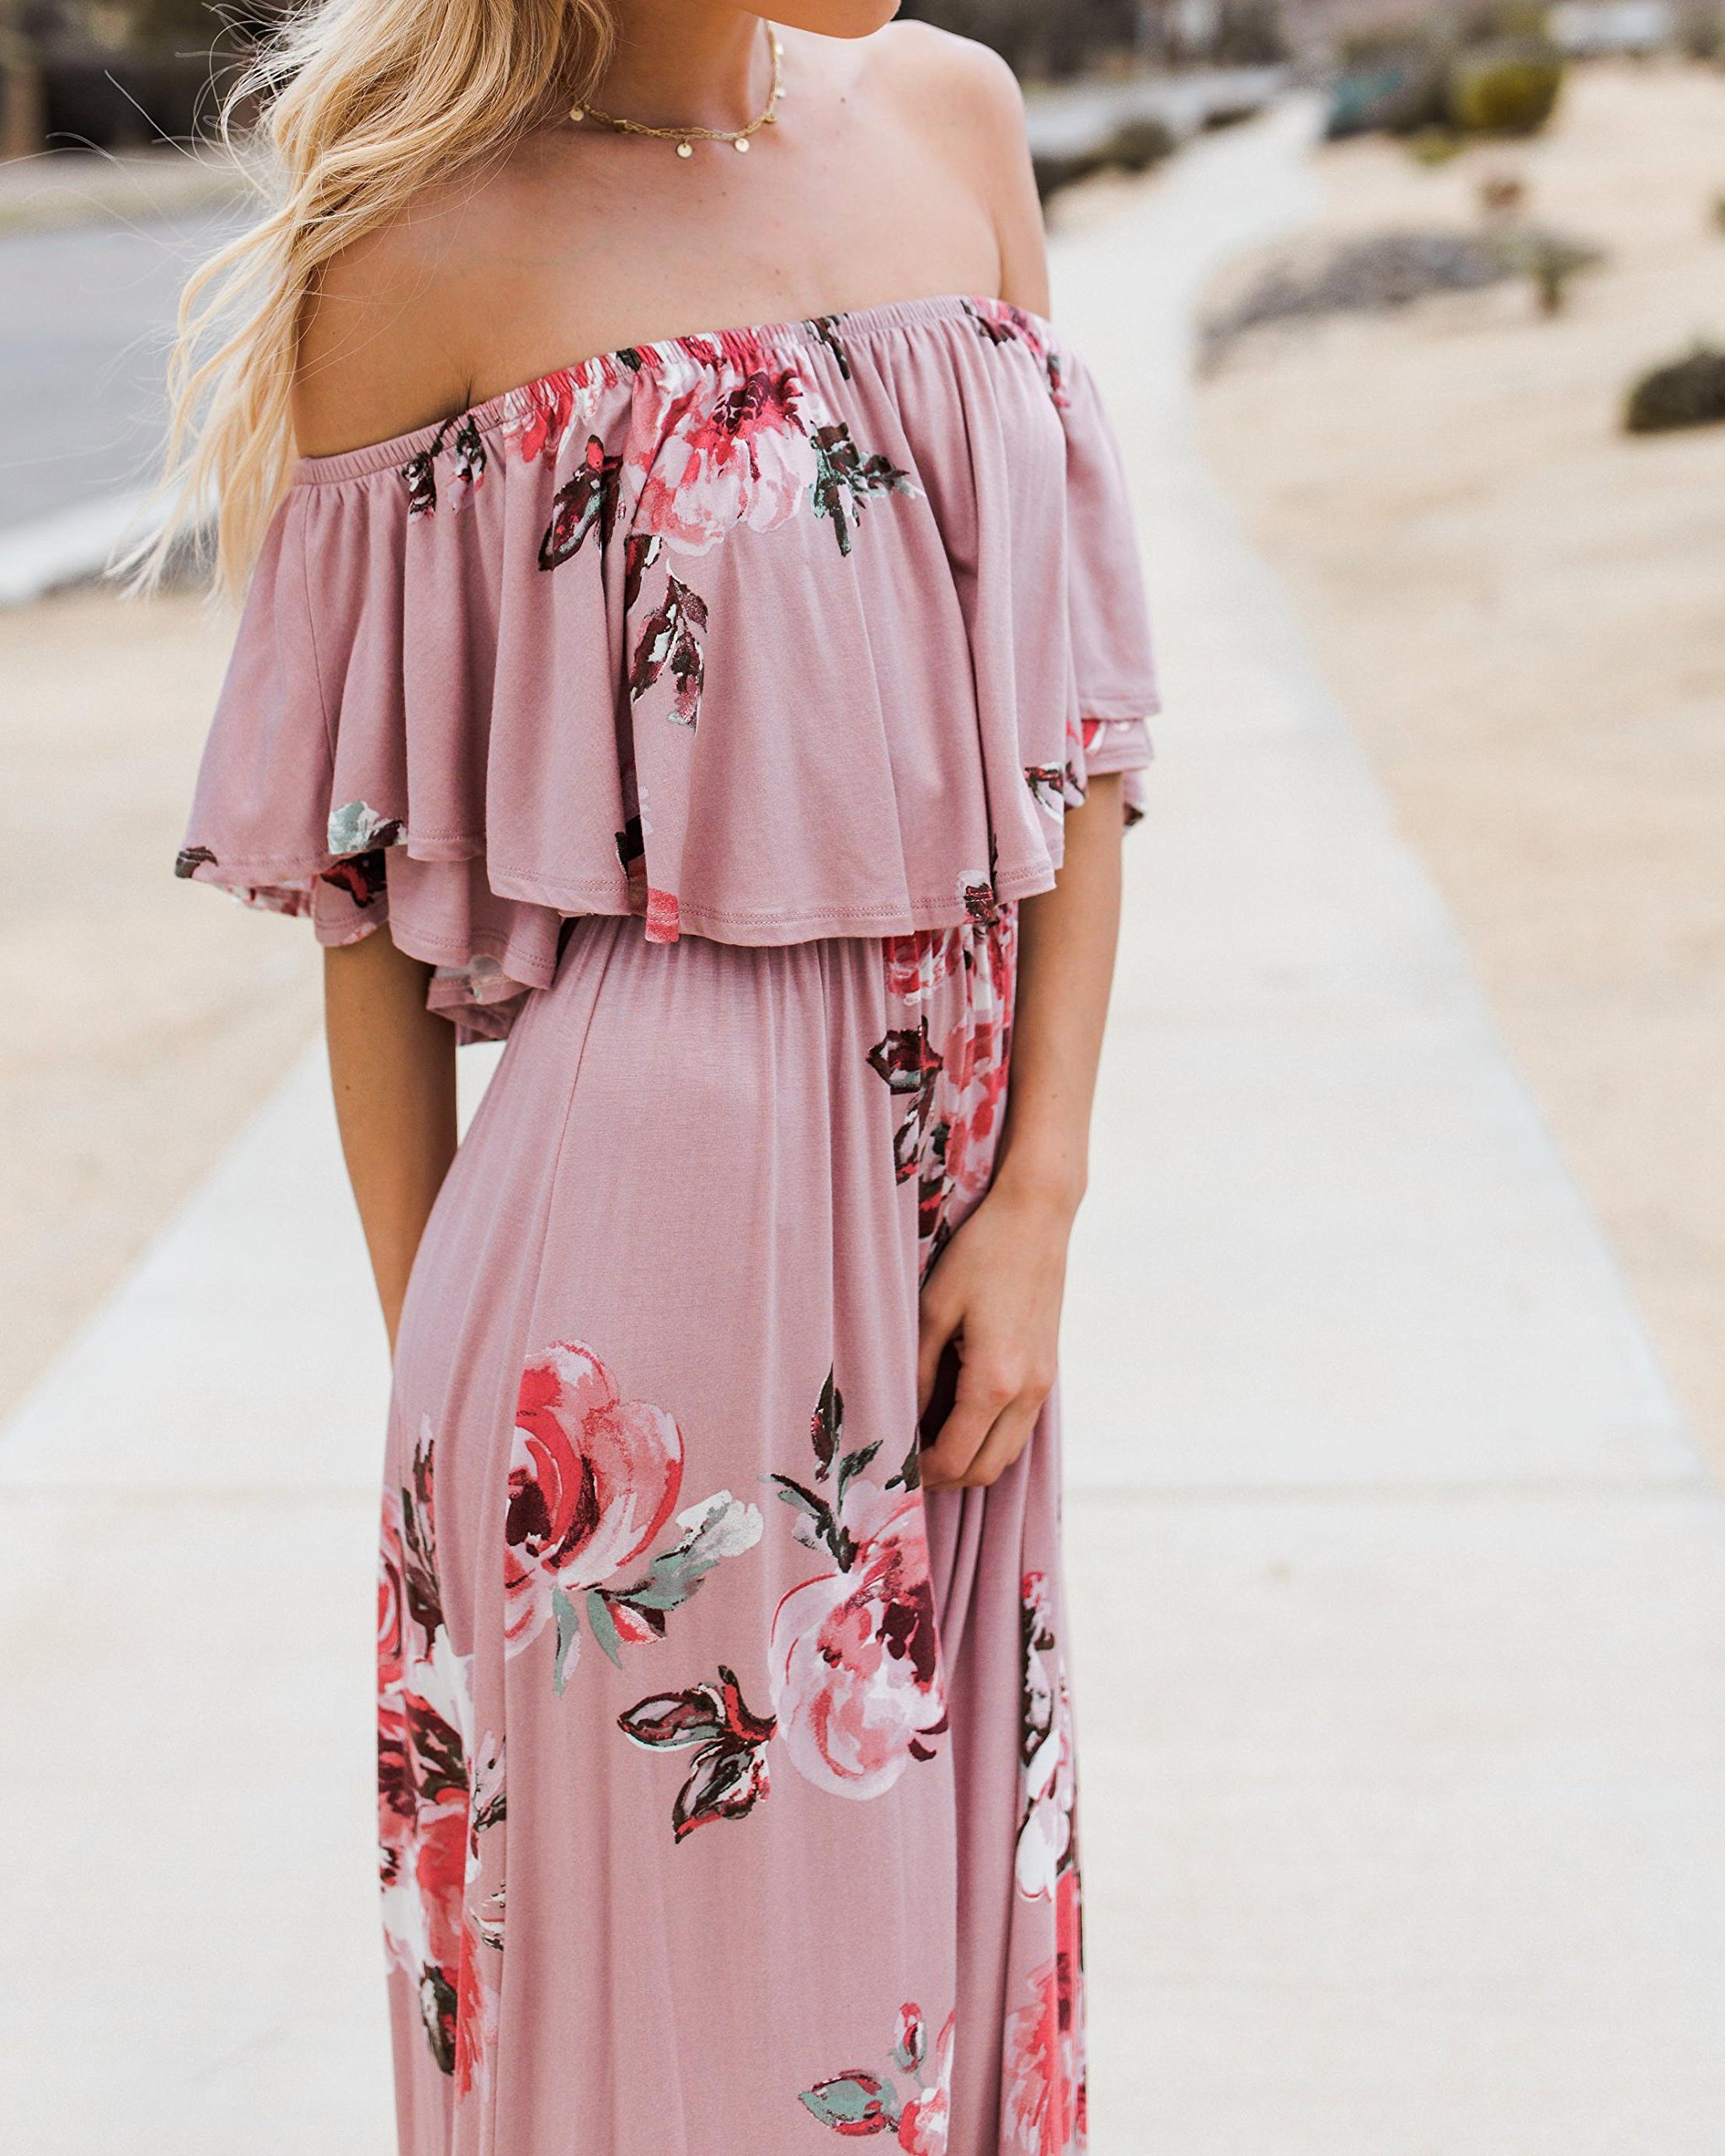 Womens Floral Off The Shoulder Dresses Summer Casual Ruffle High Waist Slit Long Maxi Dress with Pockets Pink